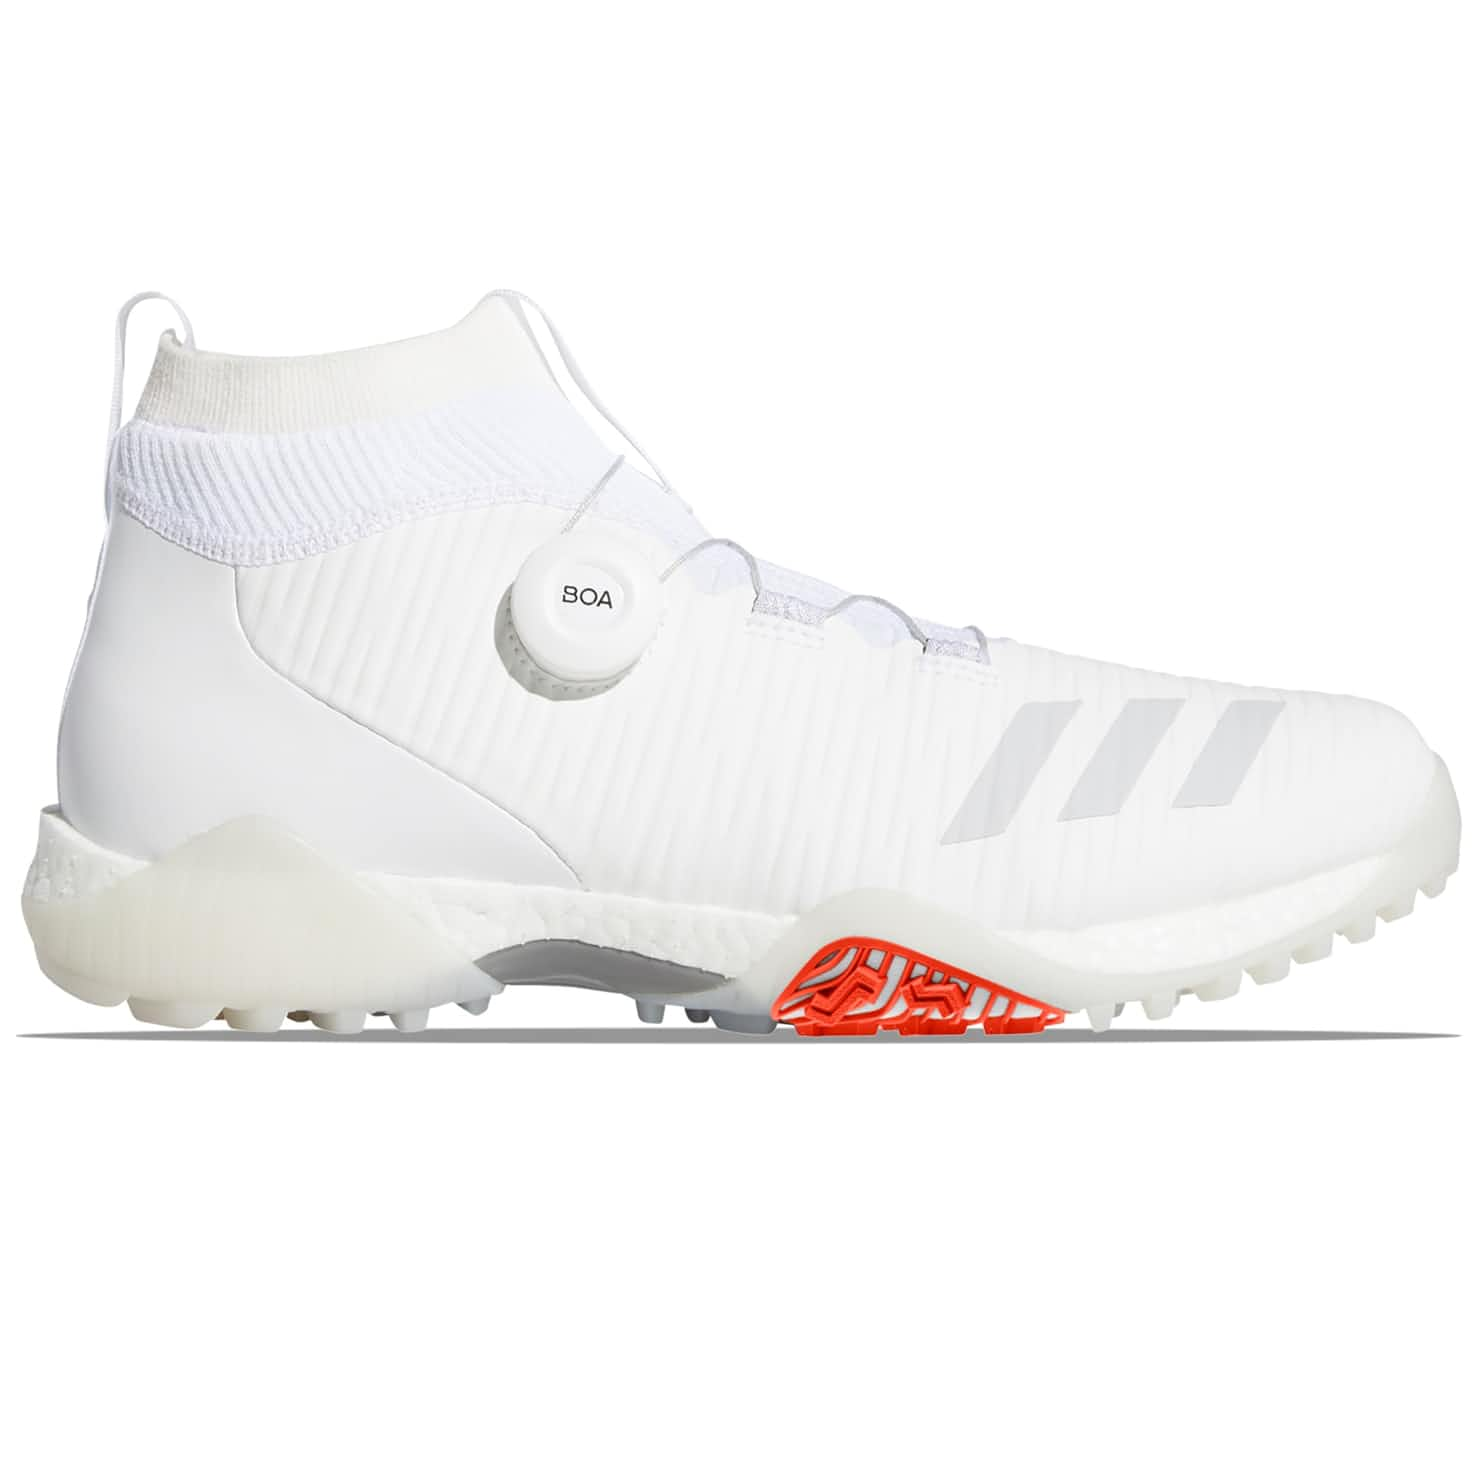 CODECHAOS BOA Shoes White/Grey/Solar Red - SS20